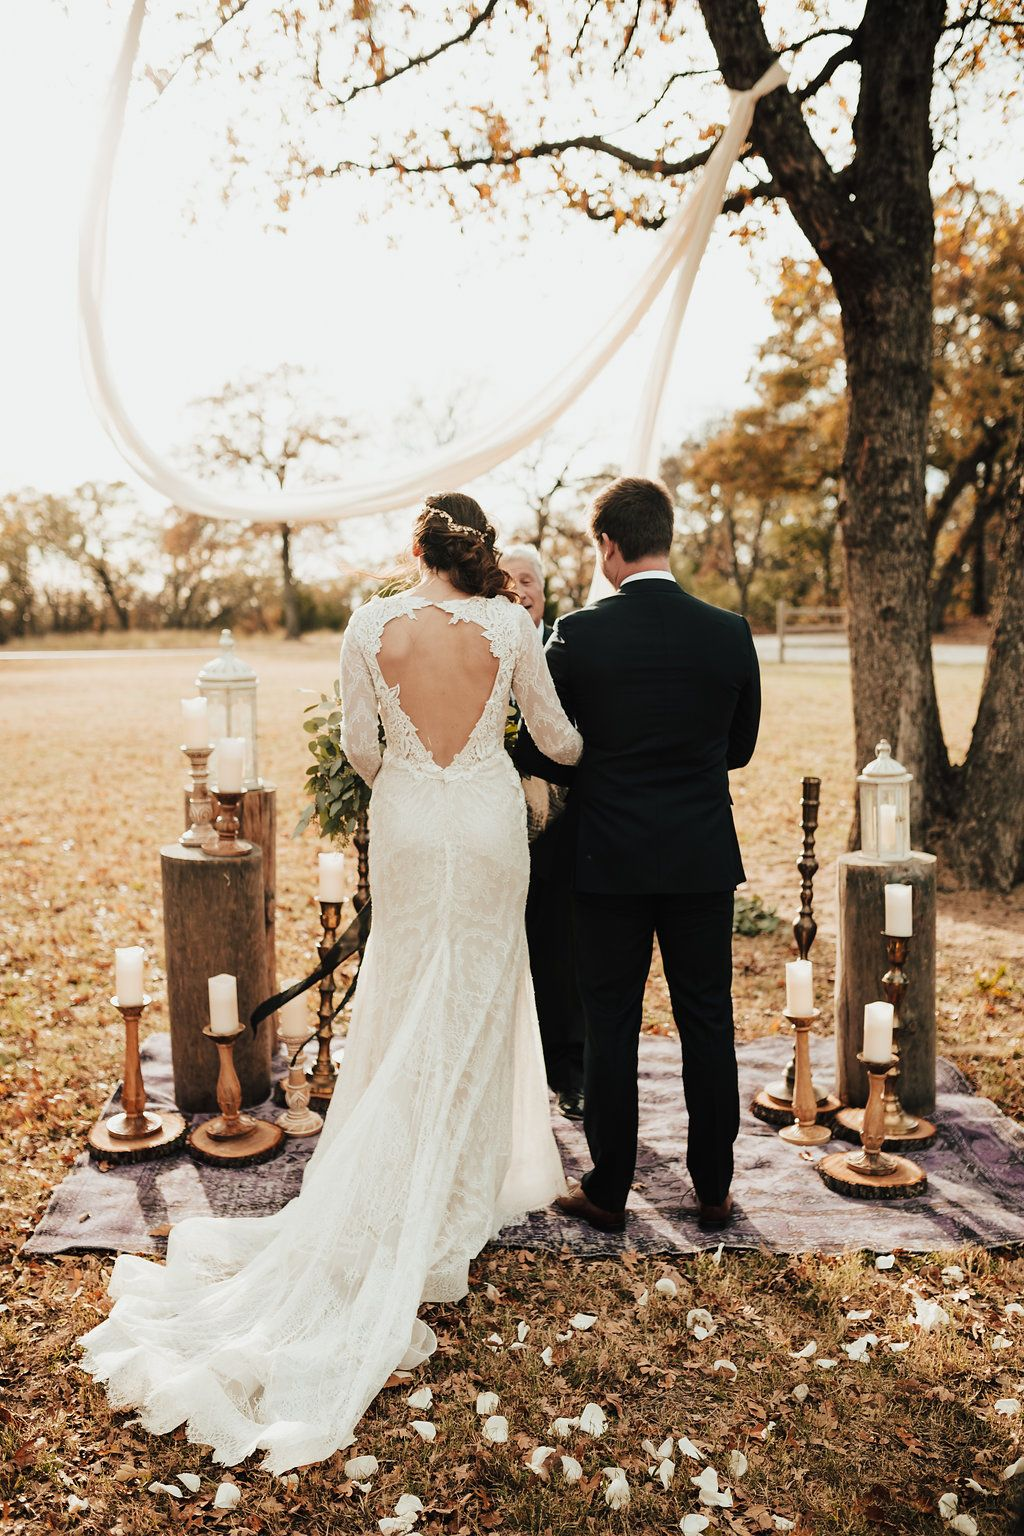 November wedding at The Grove! ONTHETIMES PHOTOGRAPHY